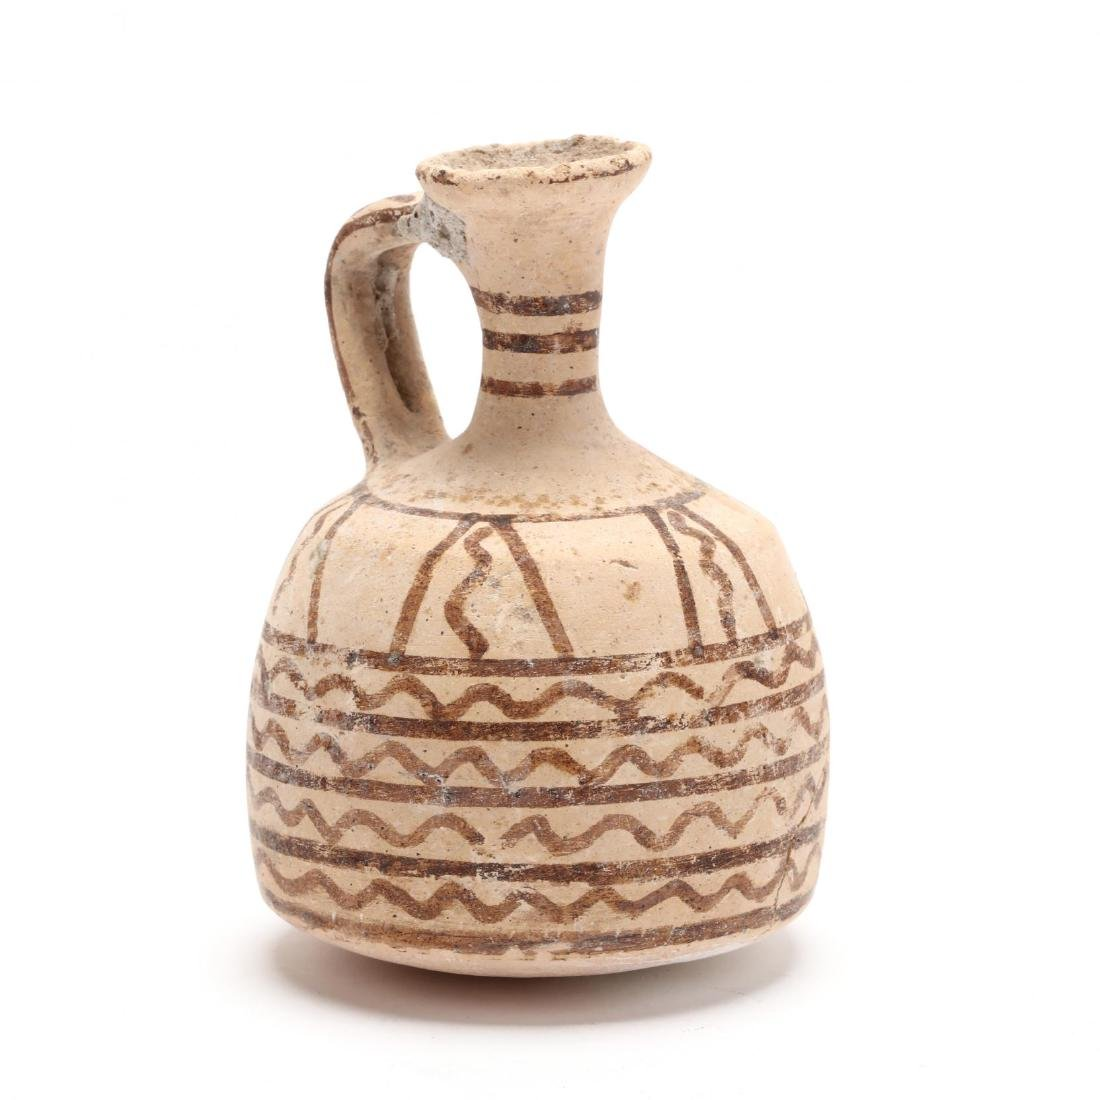 Cypriot Iron Age Bottle